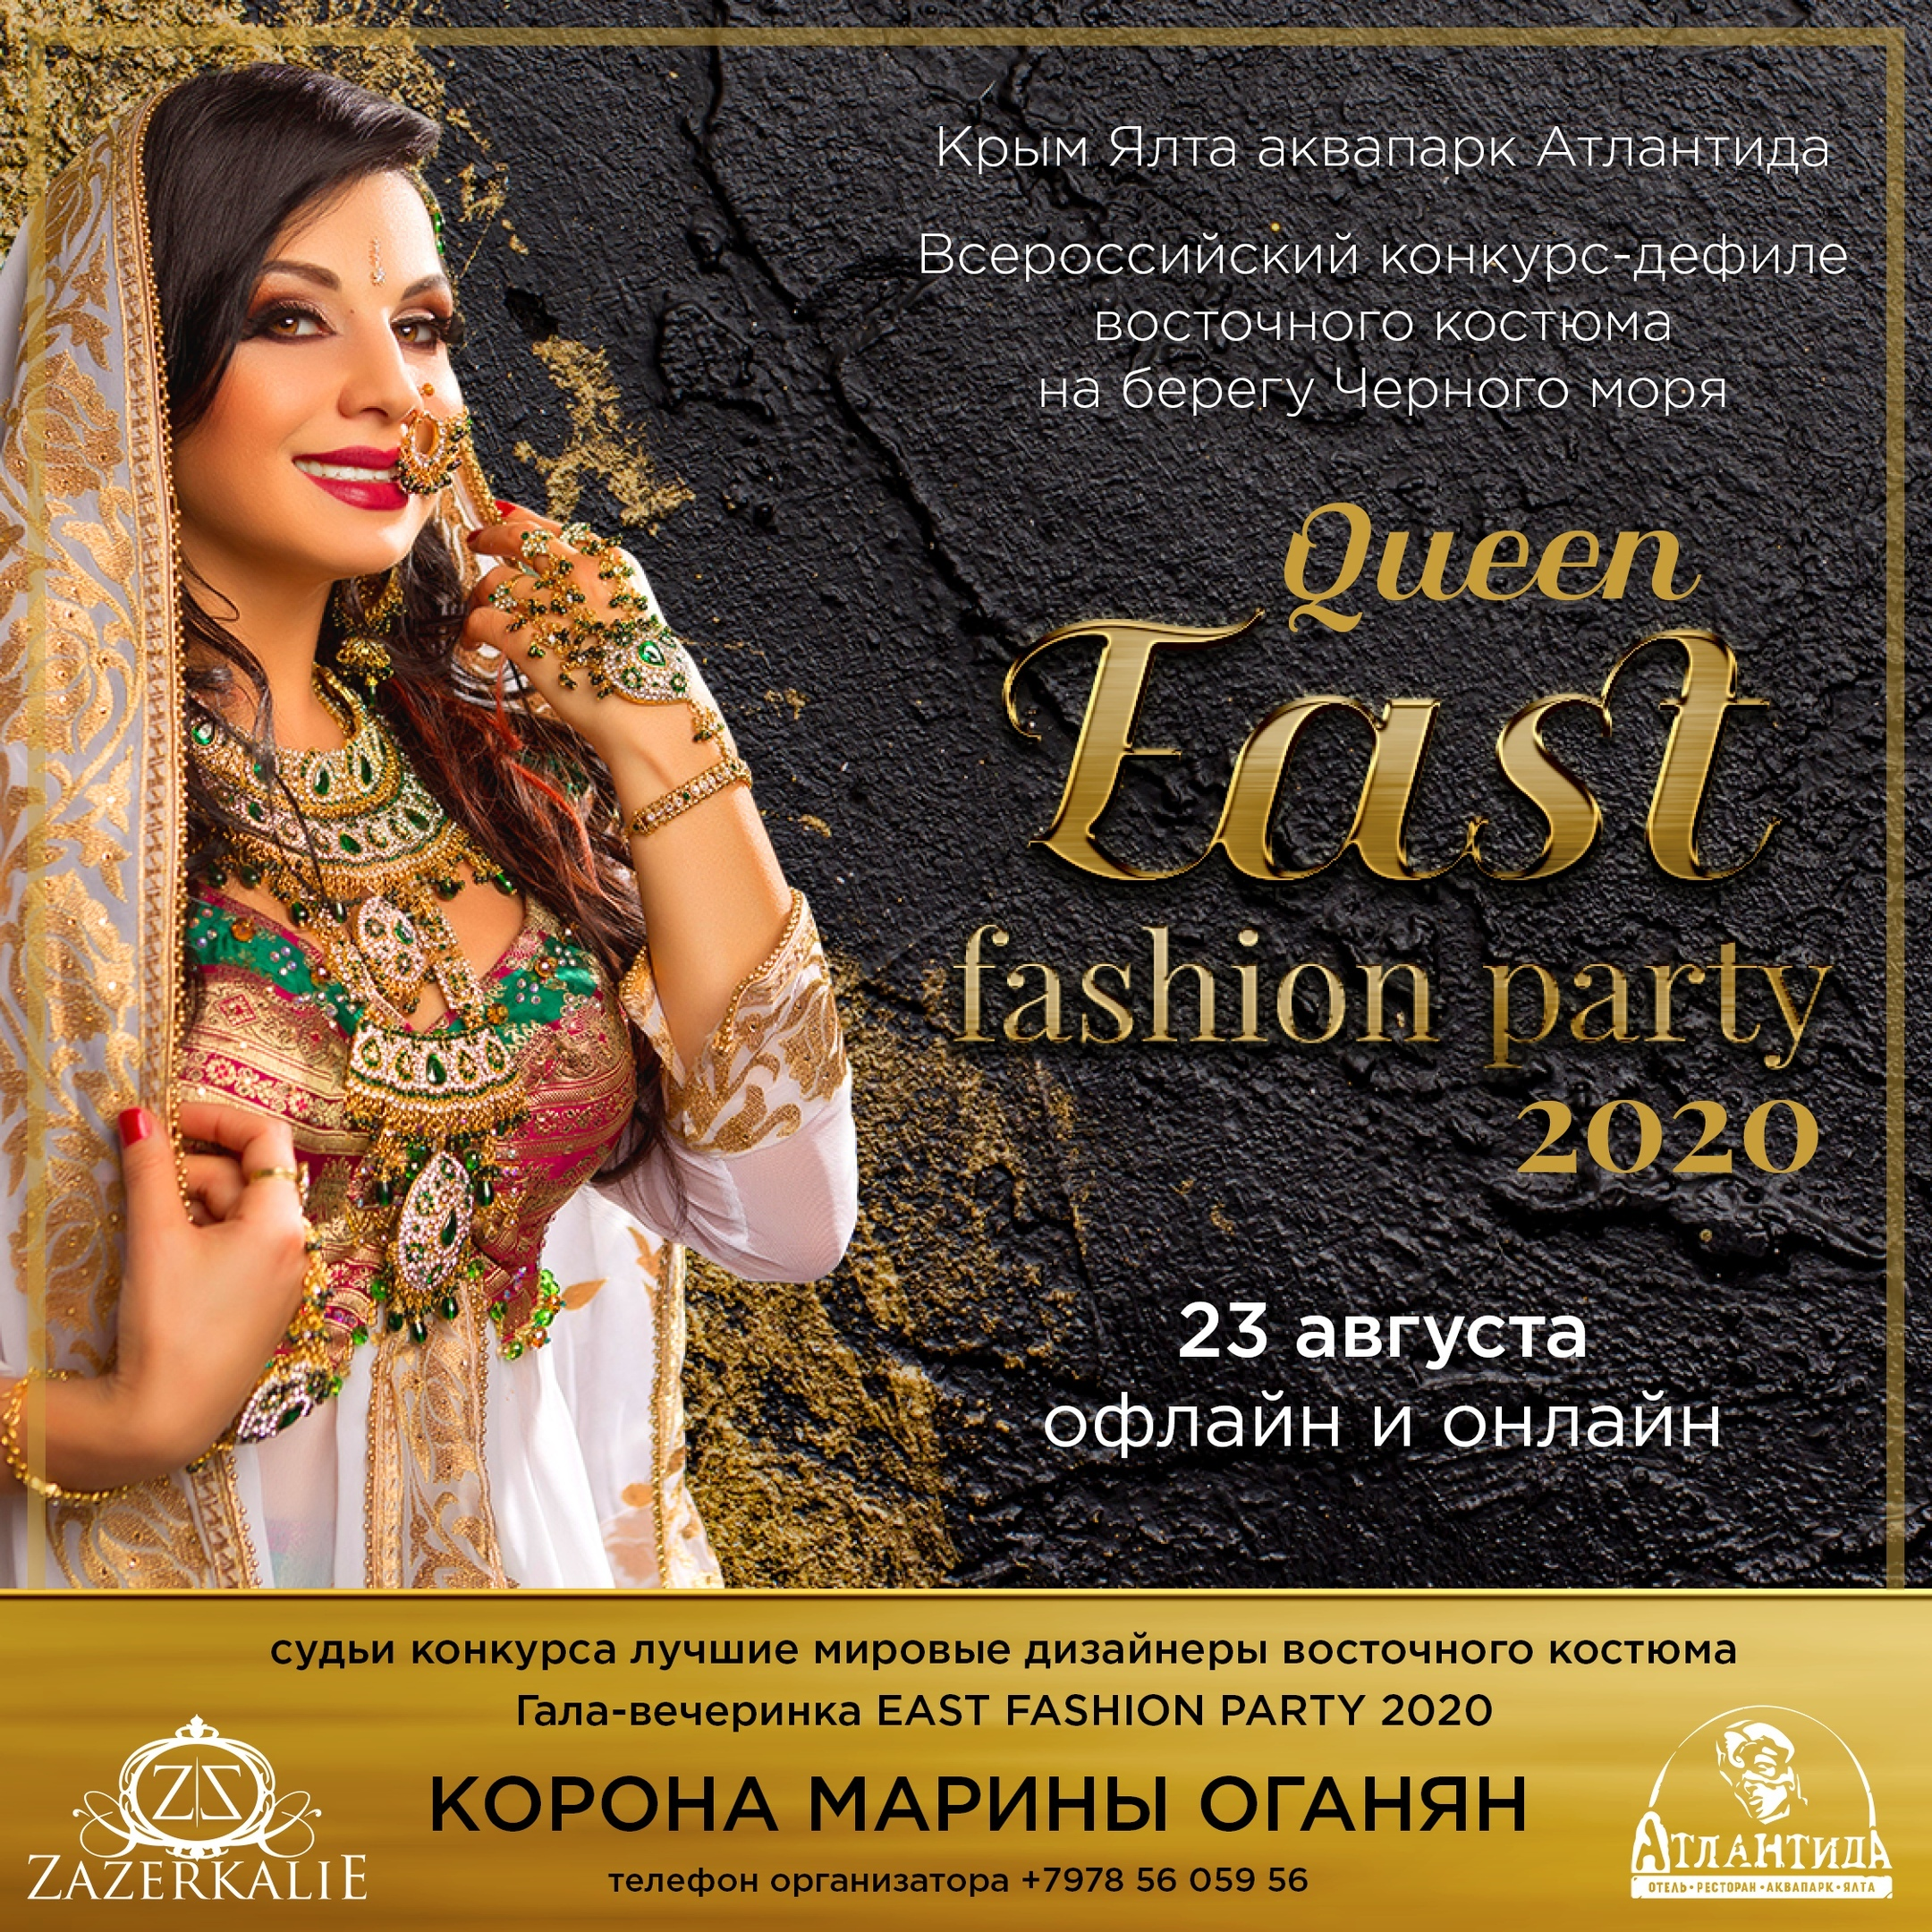 Queen East Fashion Party 2020 Онлайн